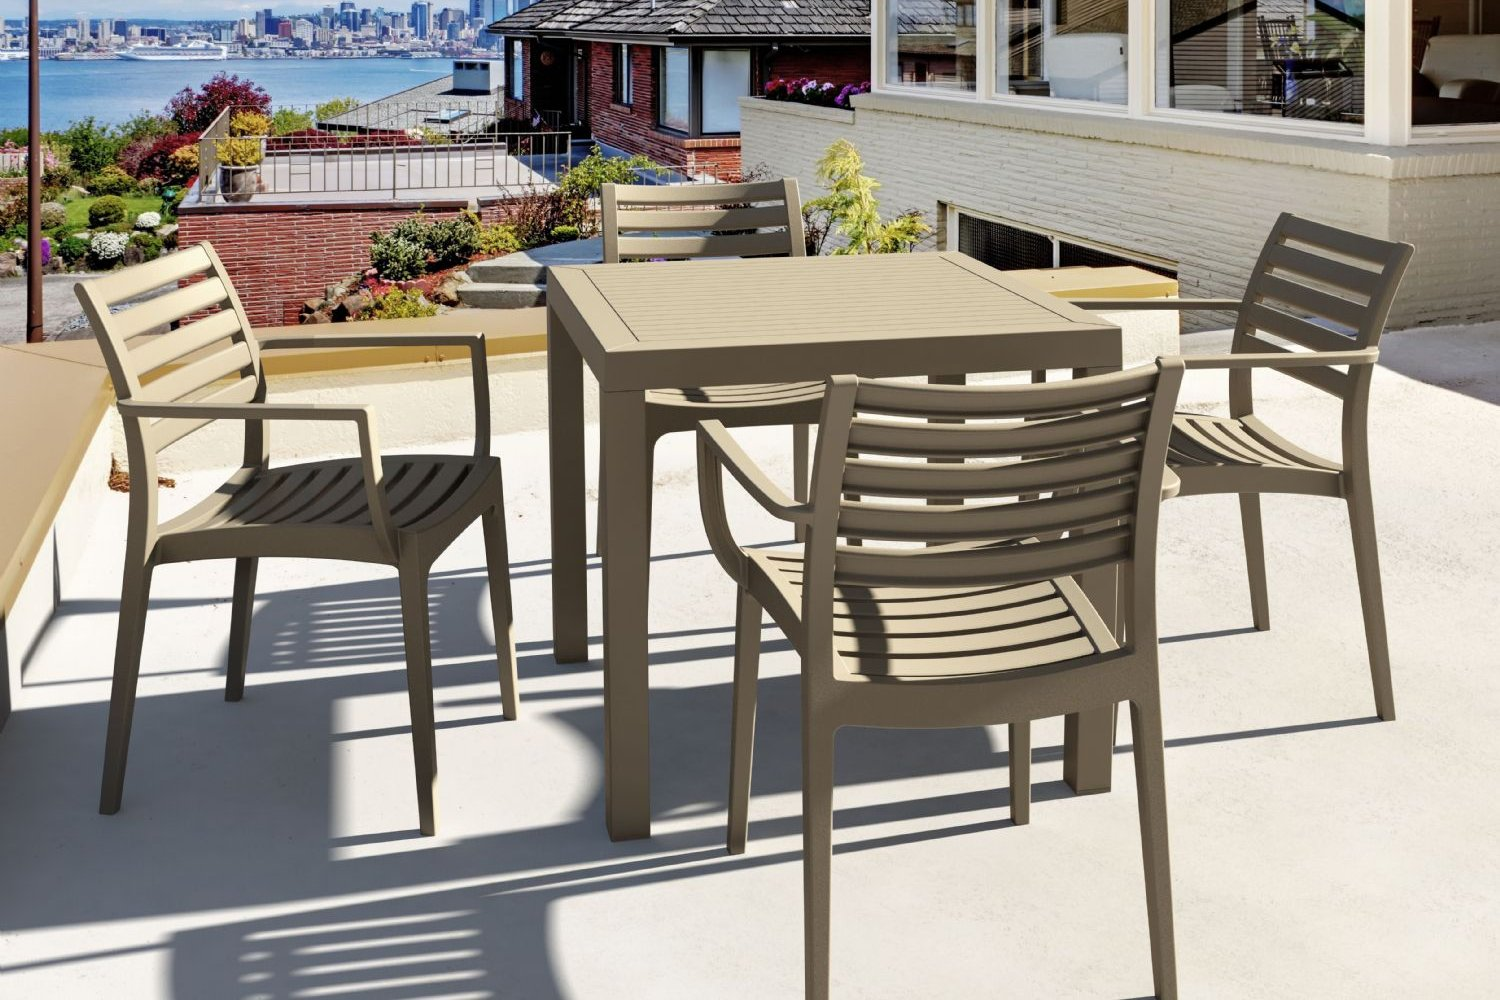 Artemis Resin Square Outdoor Dining Set 5 Piece with Arm Chairs Brown ISP1642S-BRW - 4